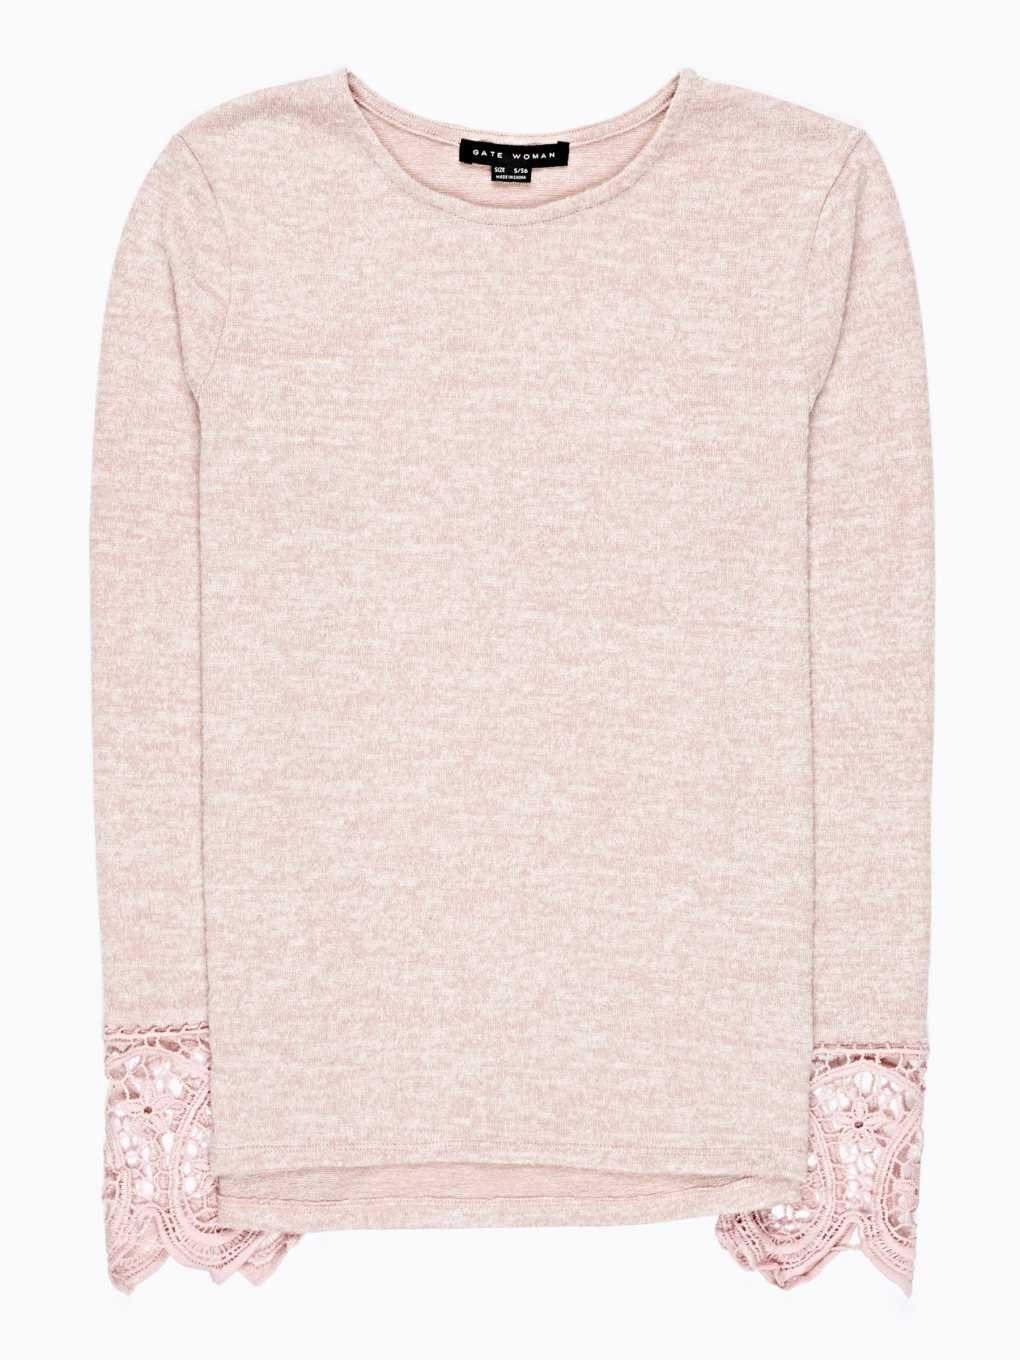 JUMPER WITH LACE DETAIL